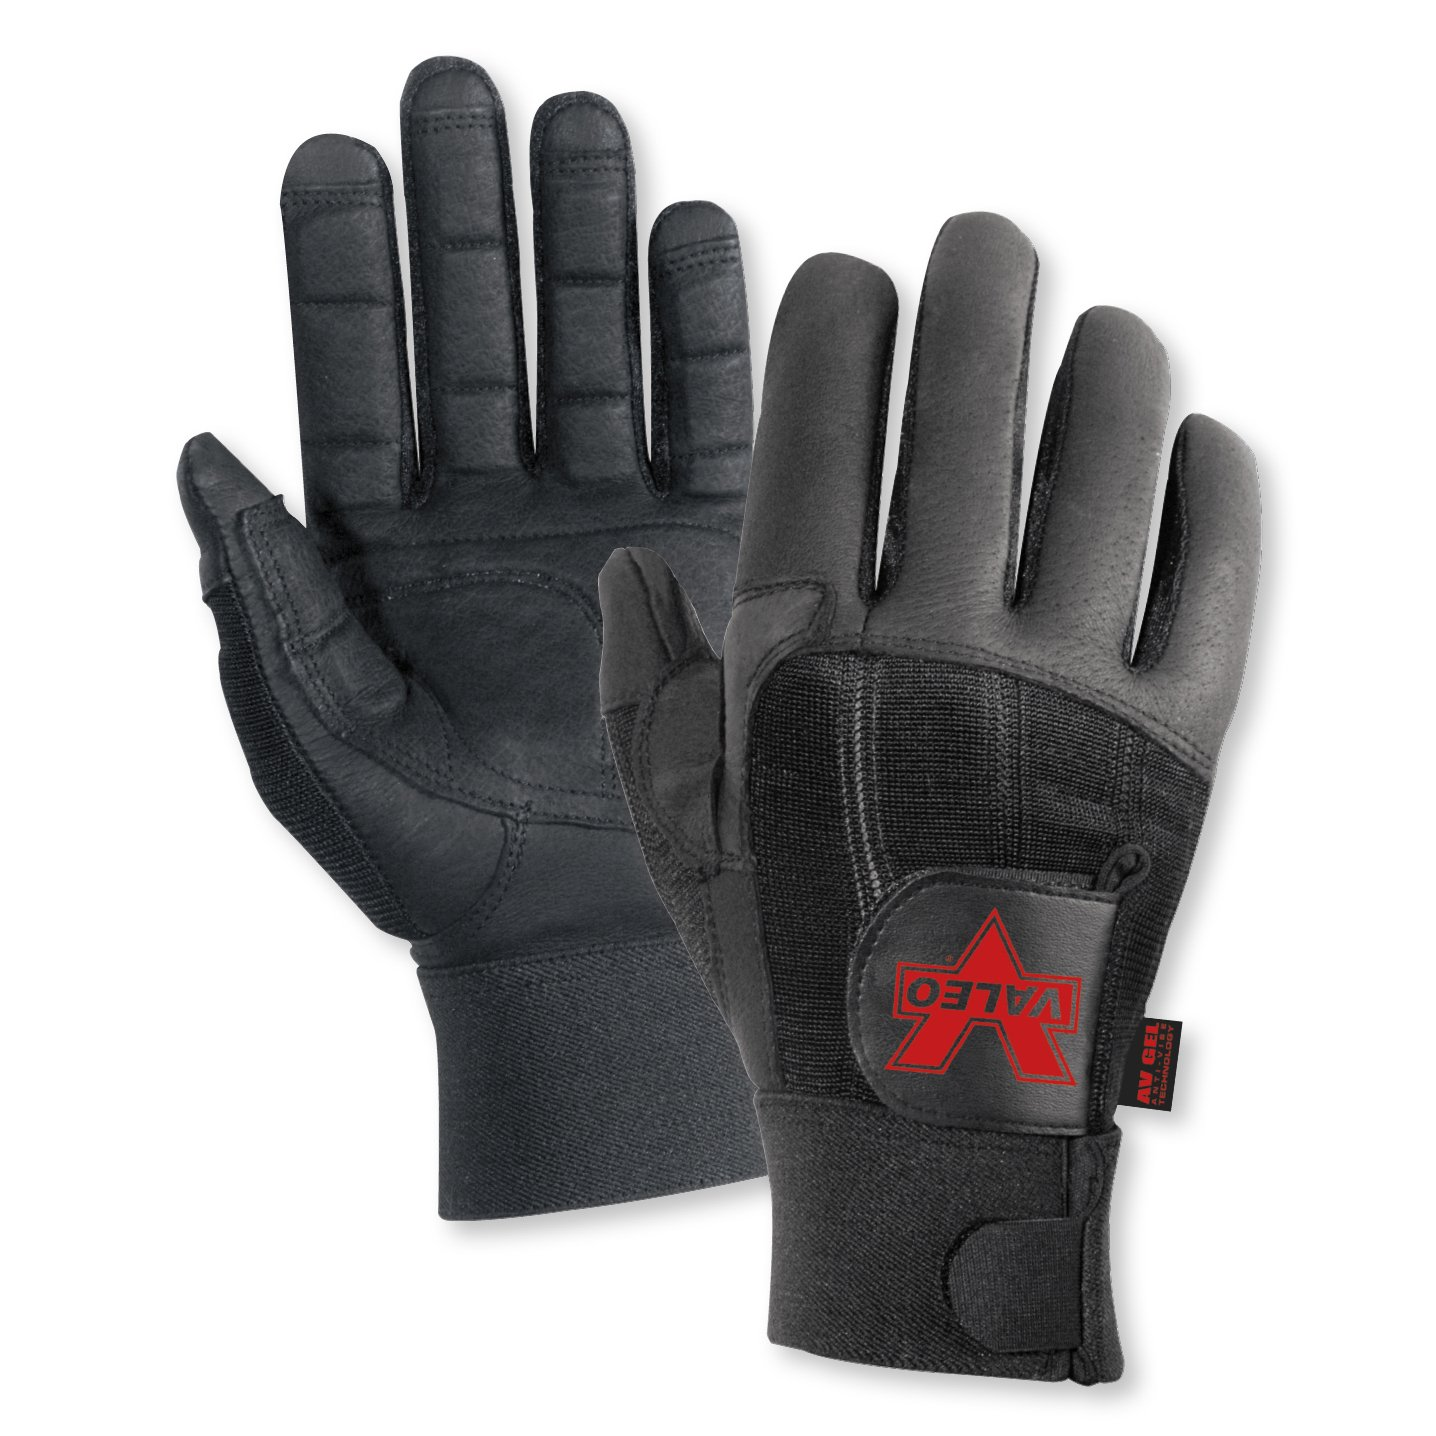 Valeo Pro Full-Finger Anti-Vibe Gloves (Black, Large)